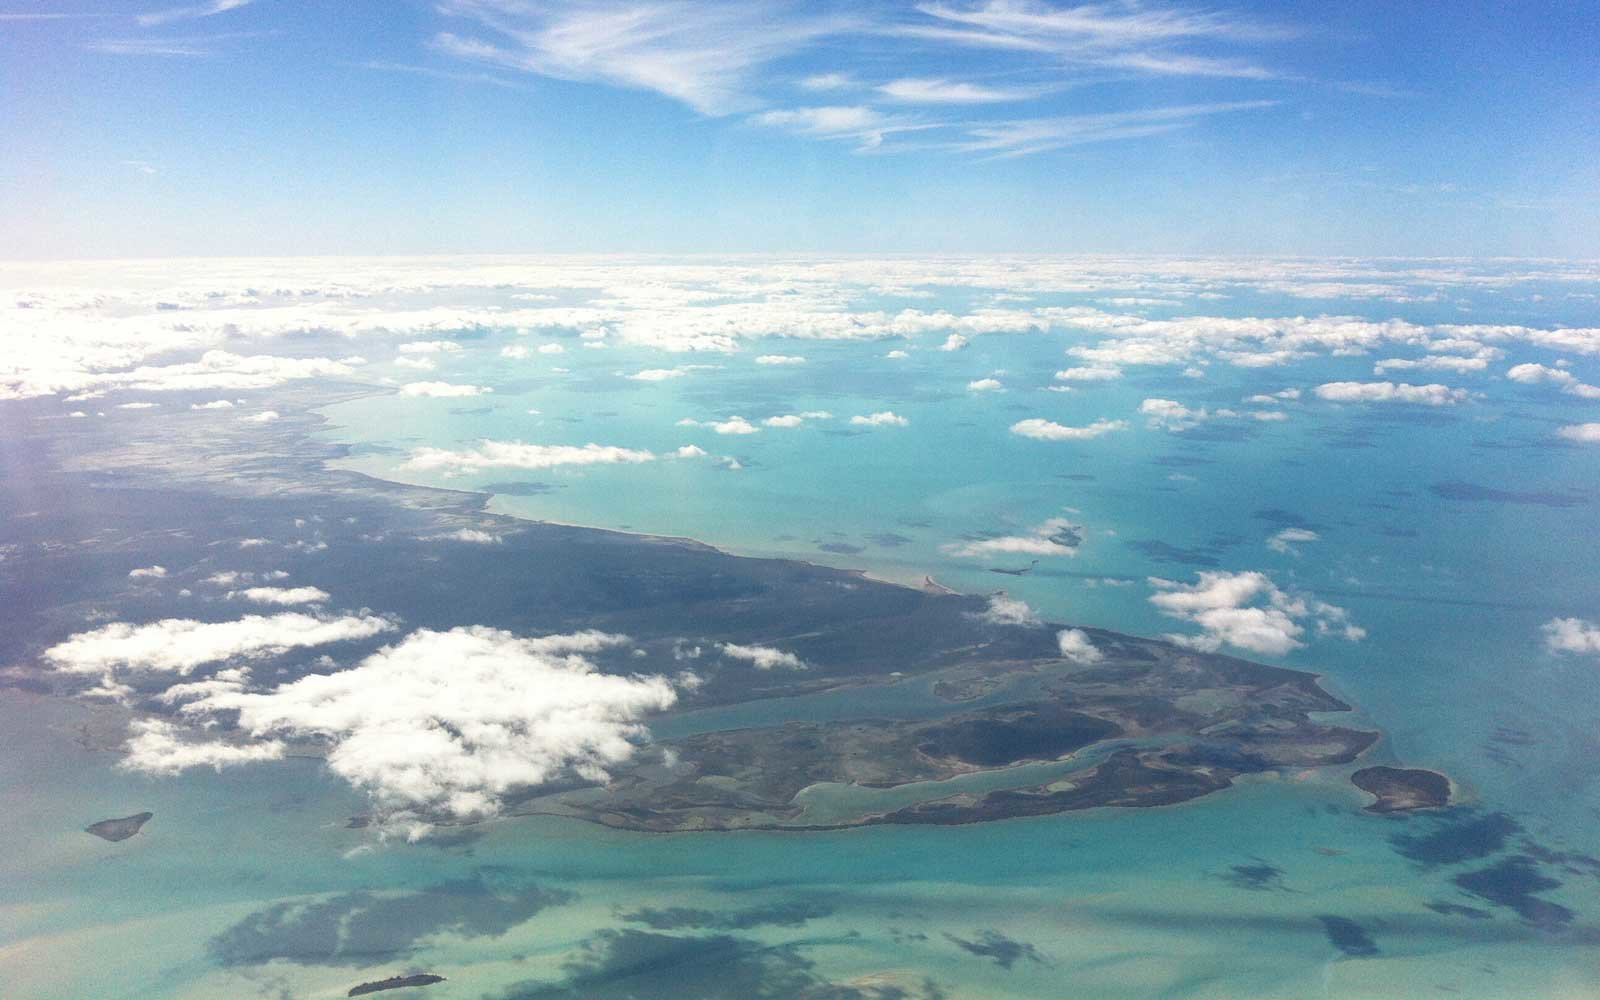 Do pilots actually avoid flying over the Bermuda Triangle?